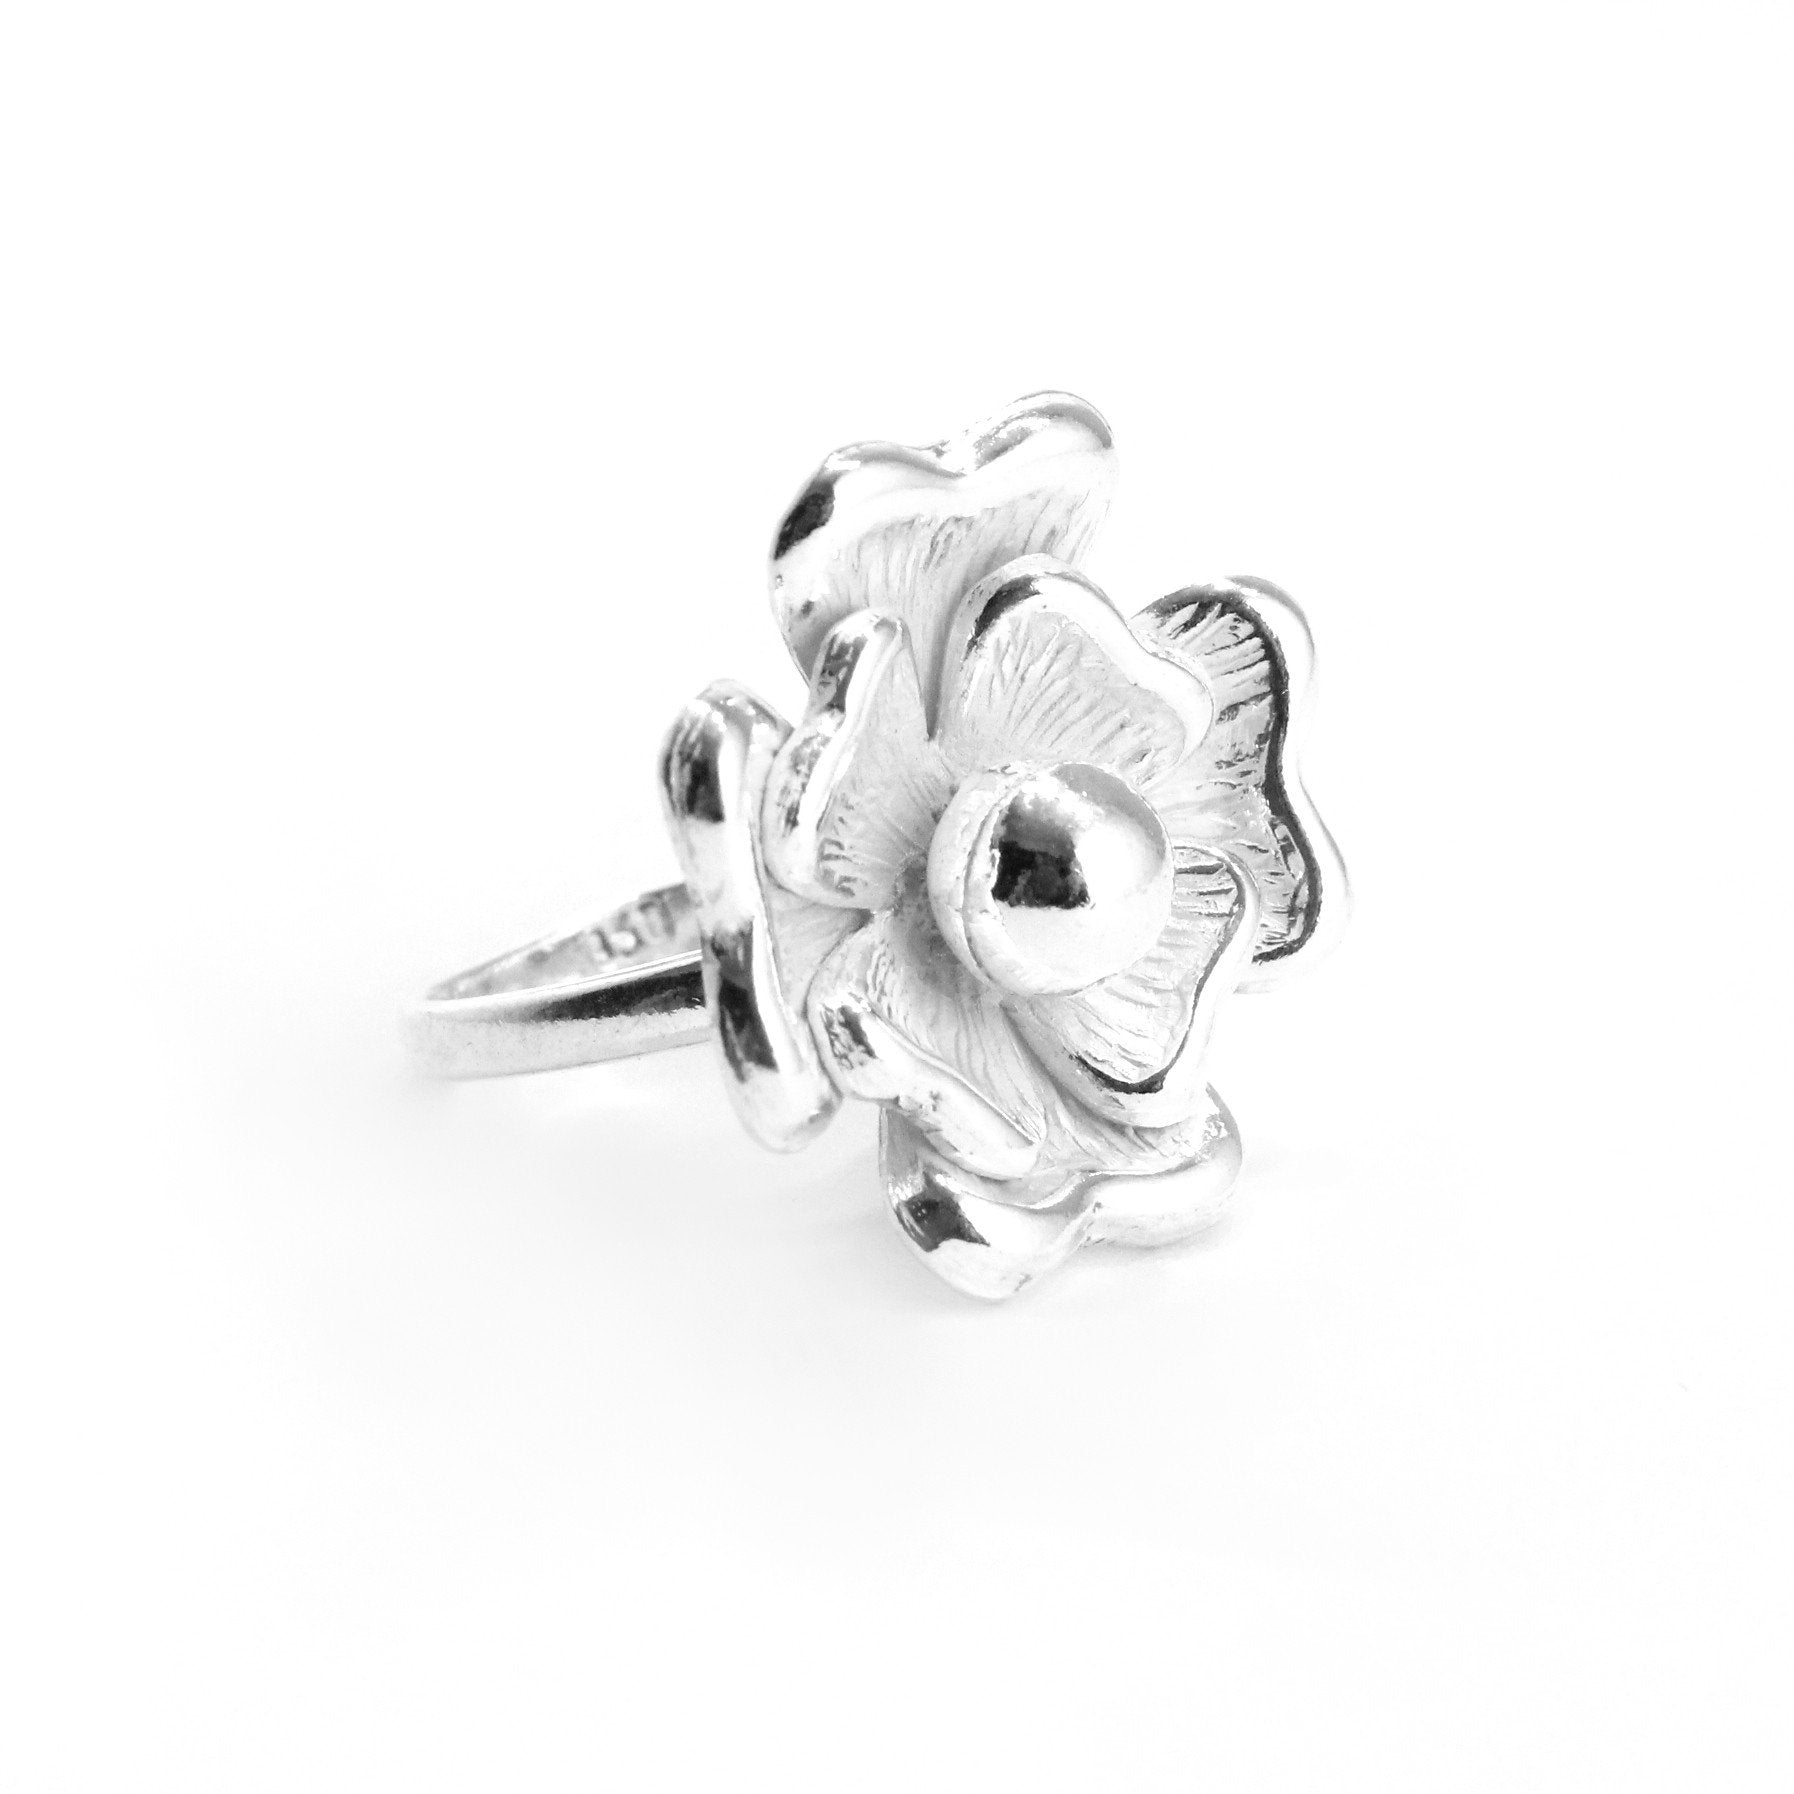 Handmade Big Flower Sterling Silver Ring - Qinti - The Peruvian Shop